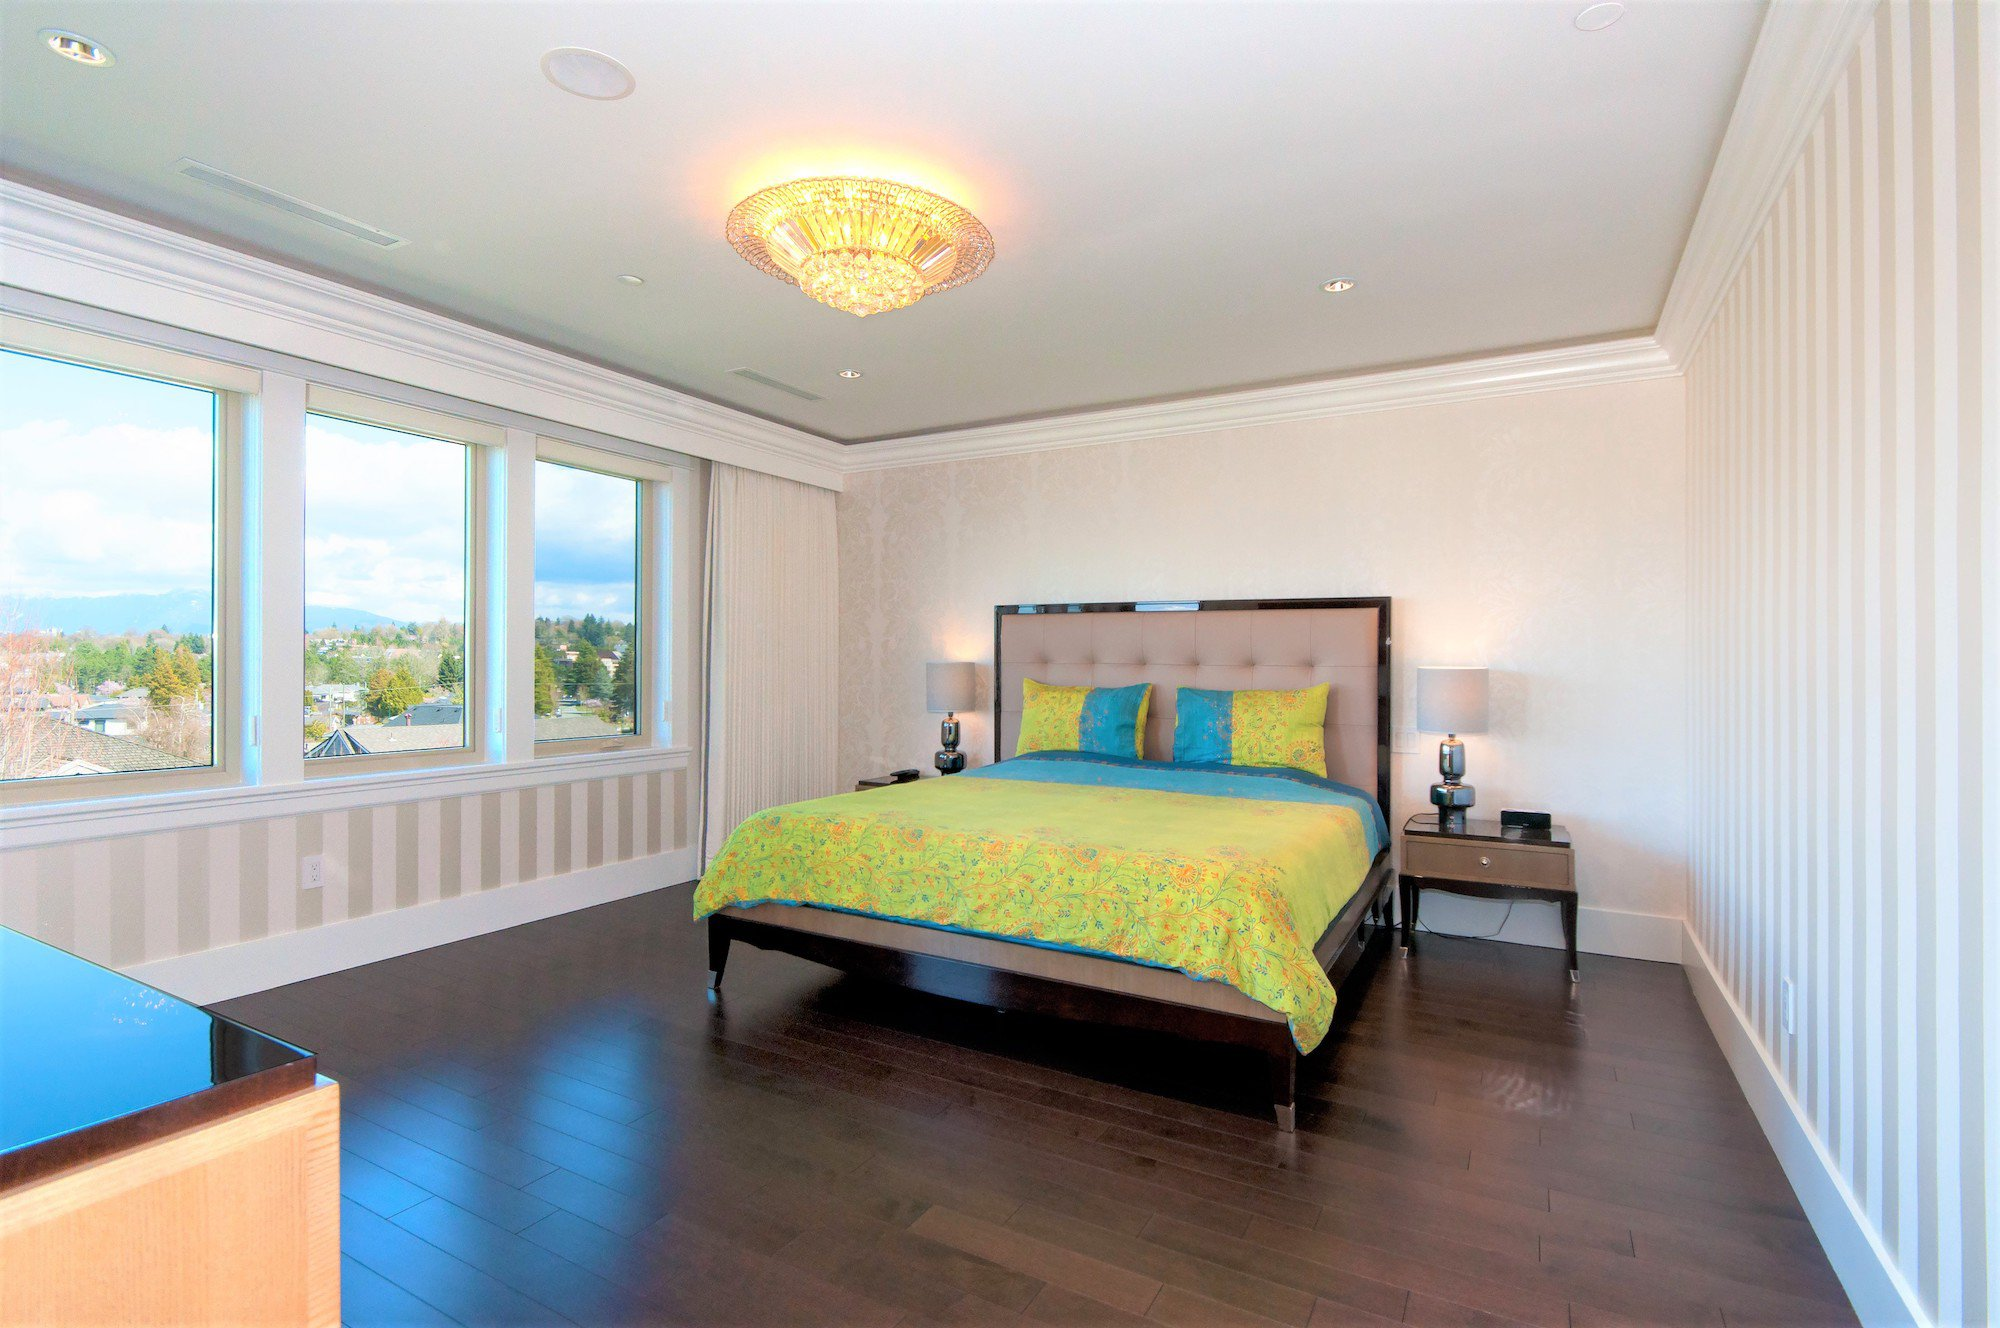 Photo 14: Photos: 2588 Edgar Crescent in Vancouver: Quilchena House for sale (Vancouver West)